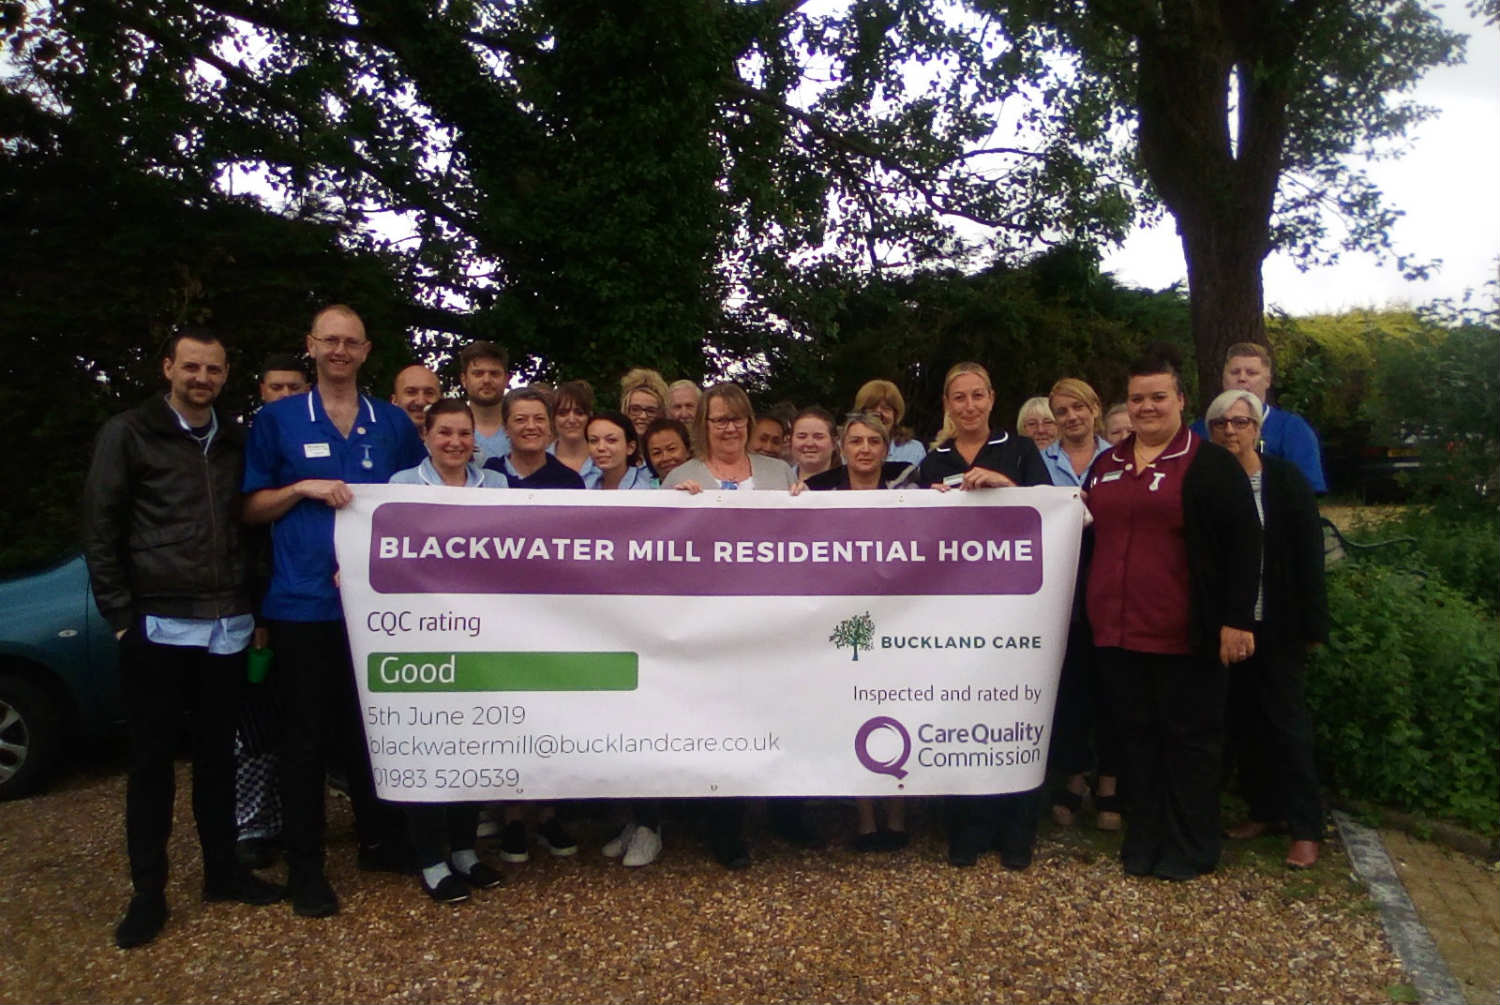 Blackwater Mill Receives 'Good' CQC Rating